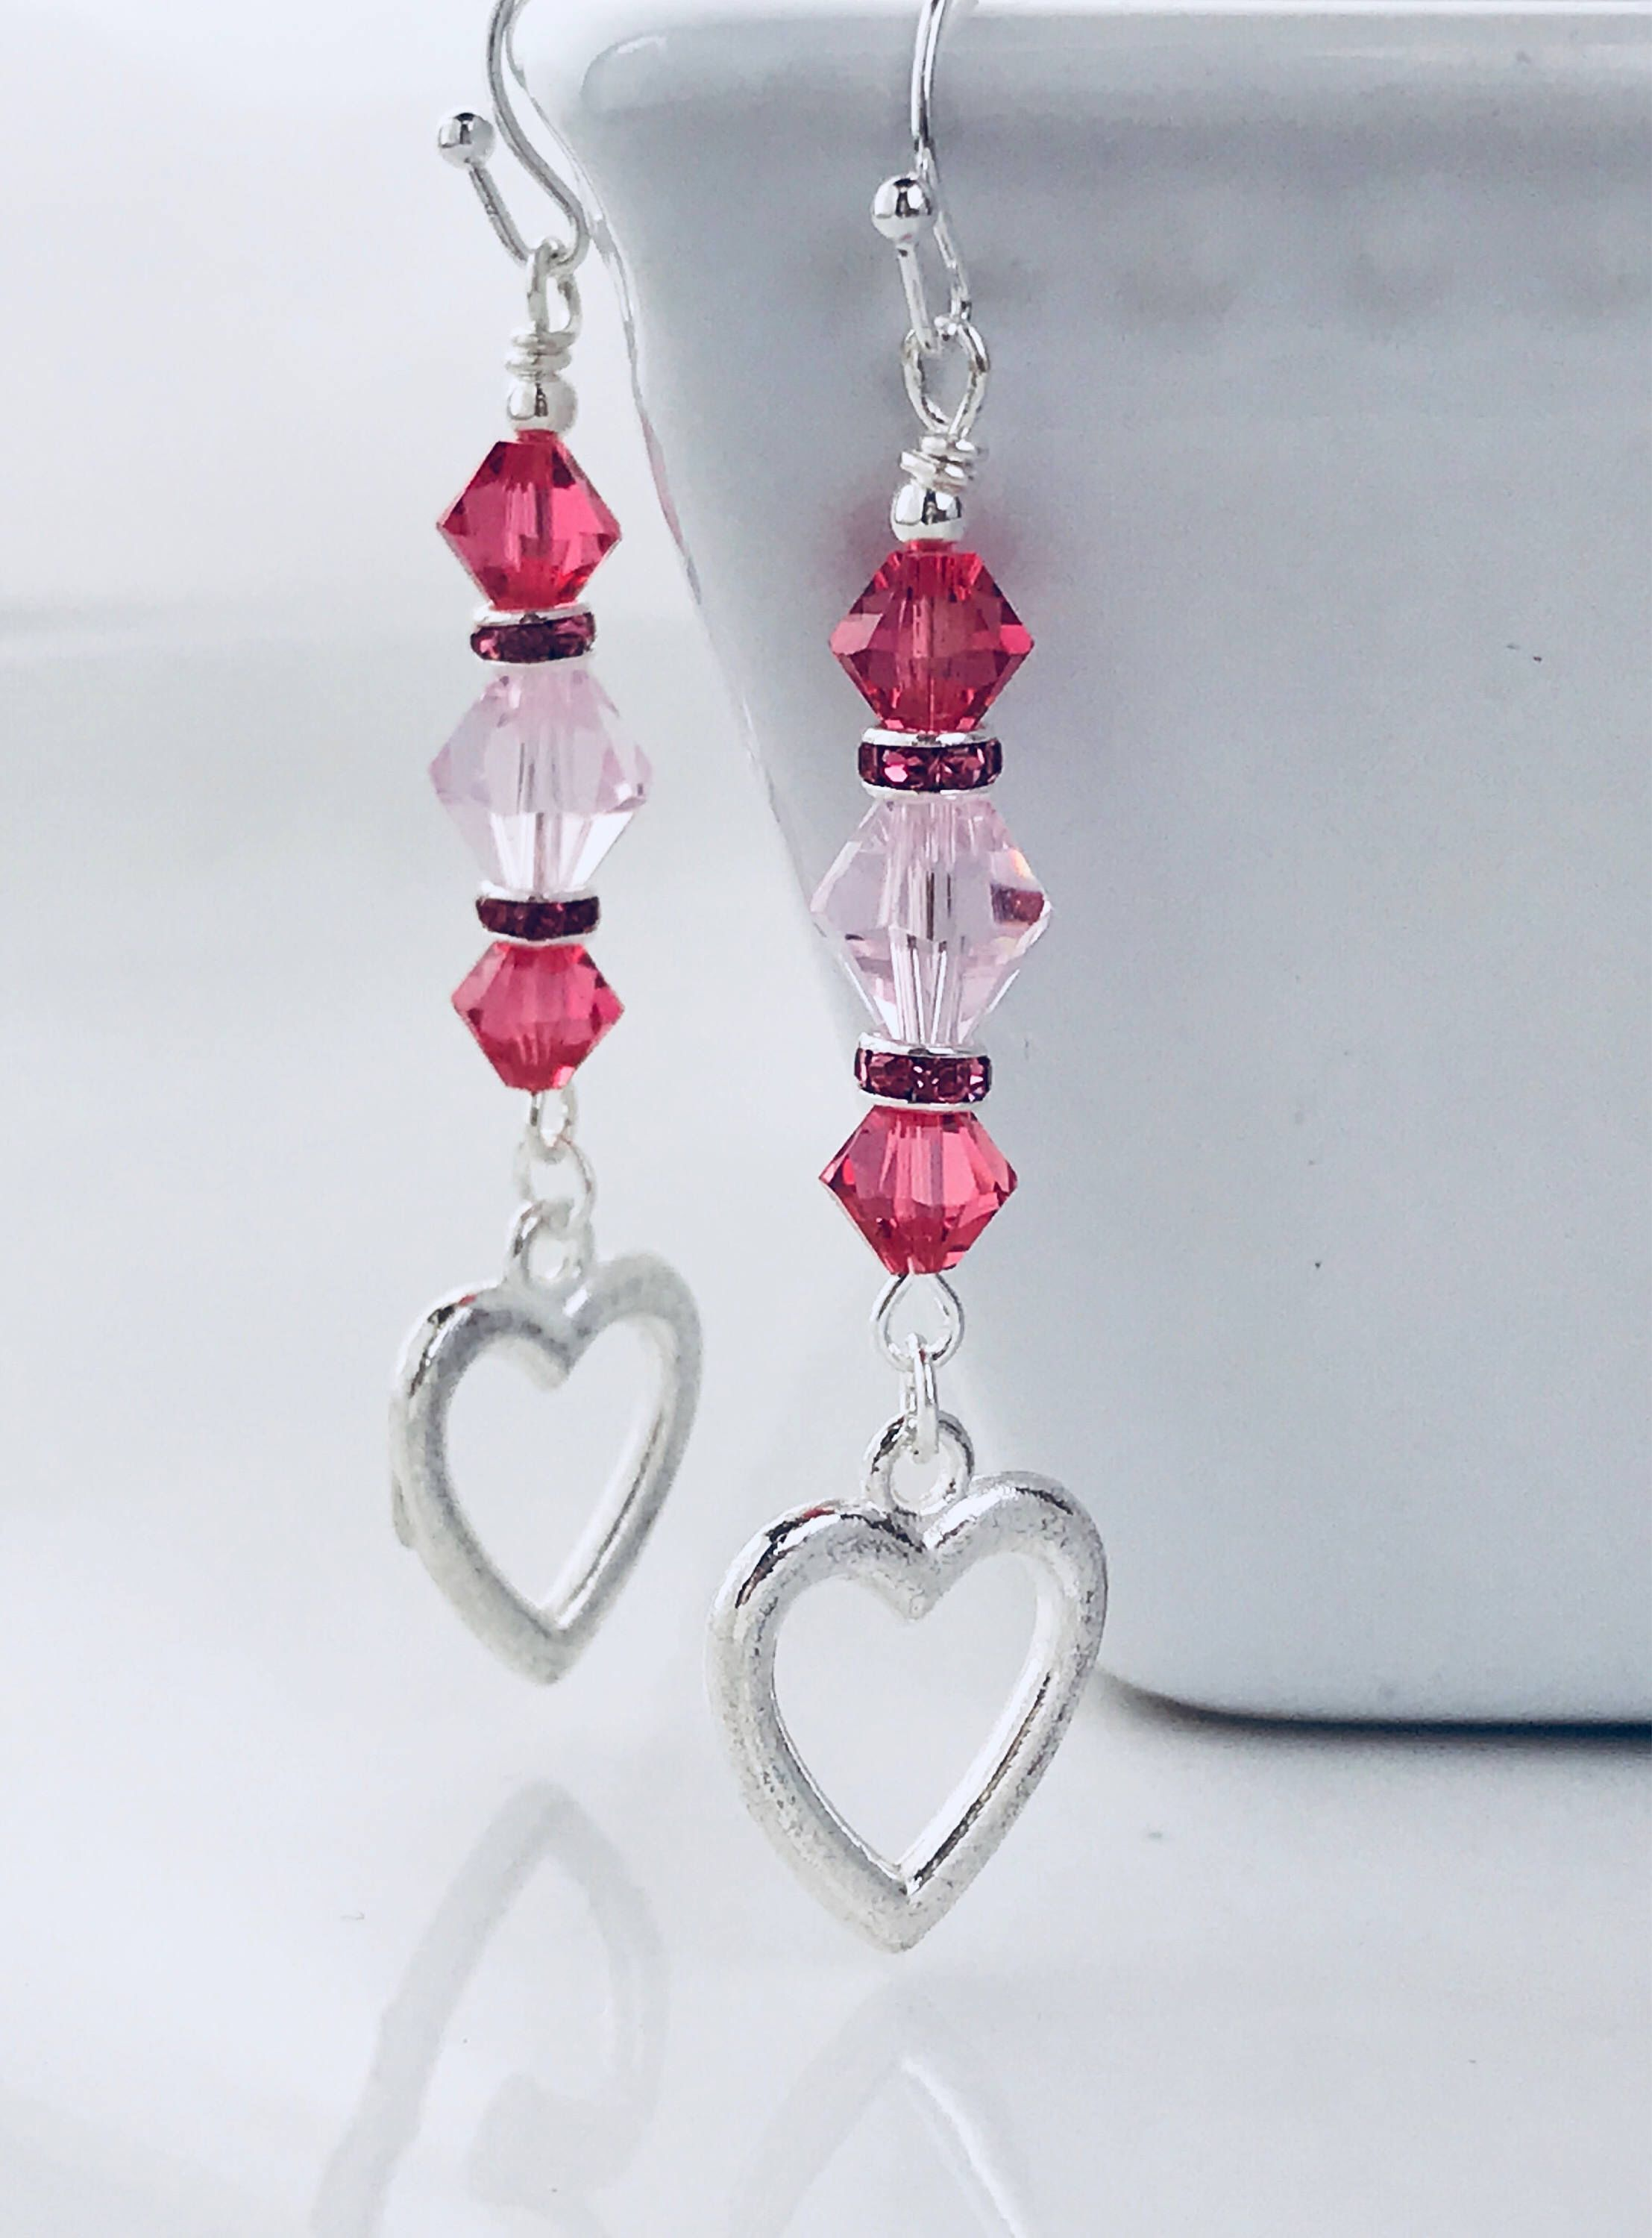 Swarovski Crystal Earrings Heart Valentines Gift For Her Pinterest Jewelry And Making